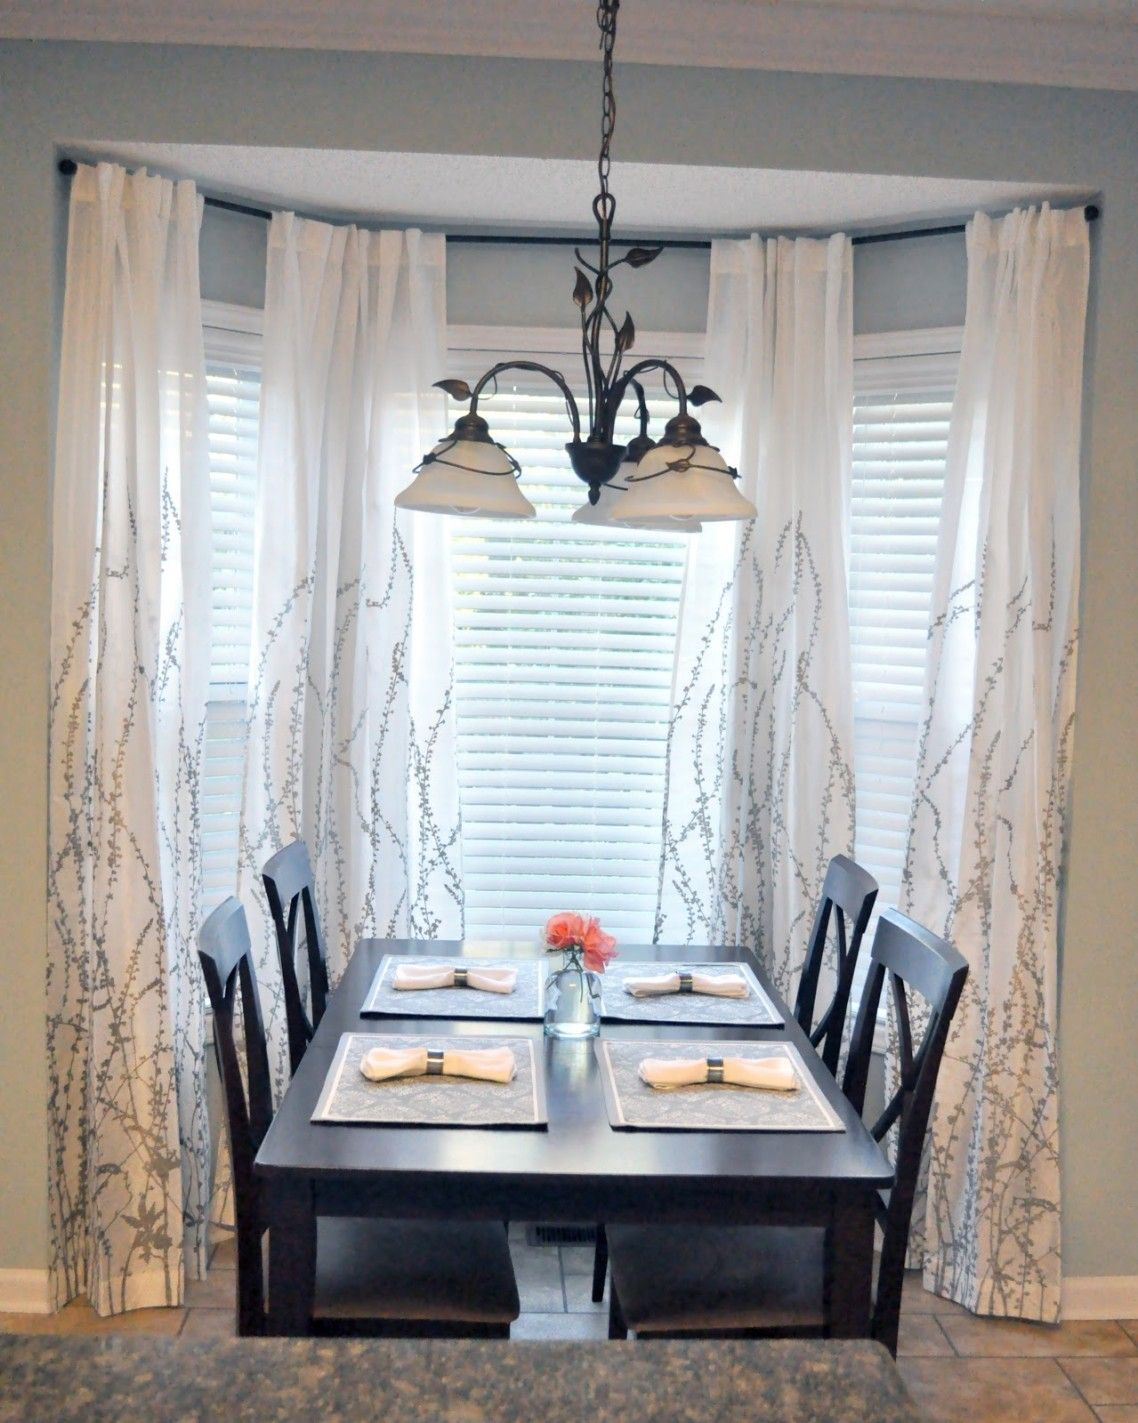 Panel Curtain Luxury White Bay Window S Window Treatments With Blinds For Dining Room With Dining Room Windows Luxury Dining Room Dining Room Window Treatments